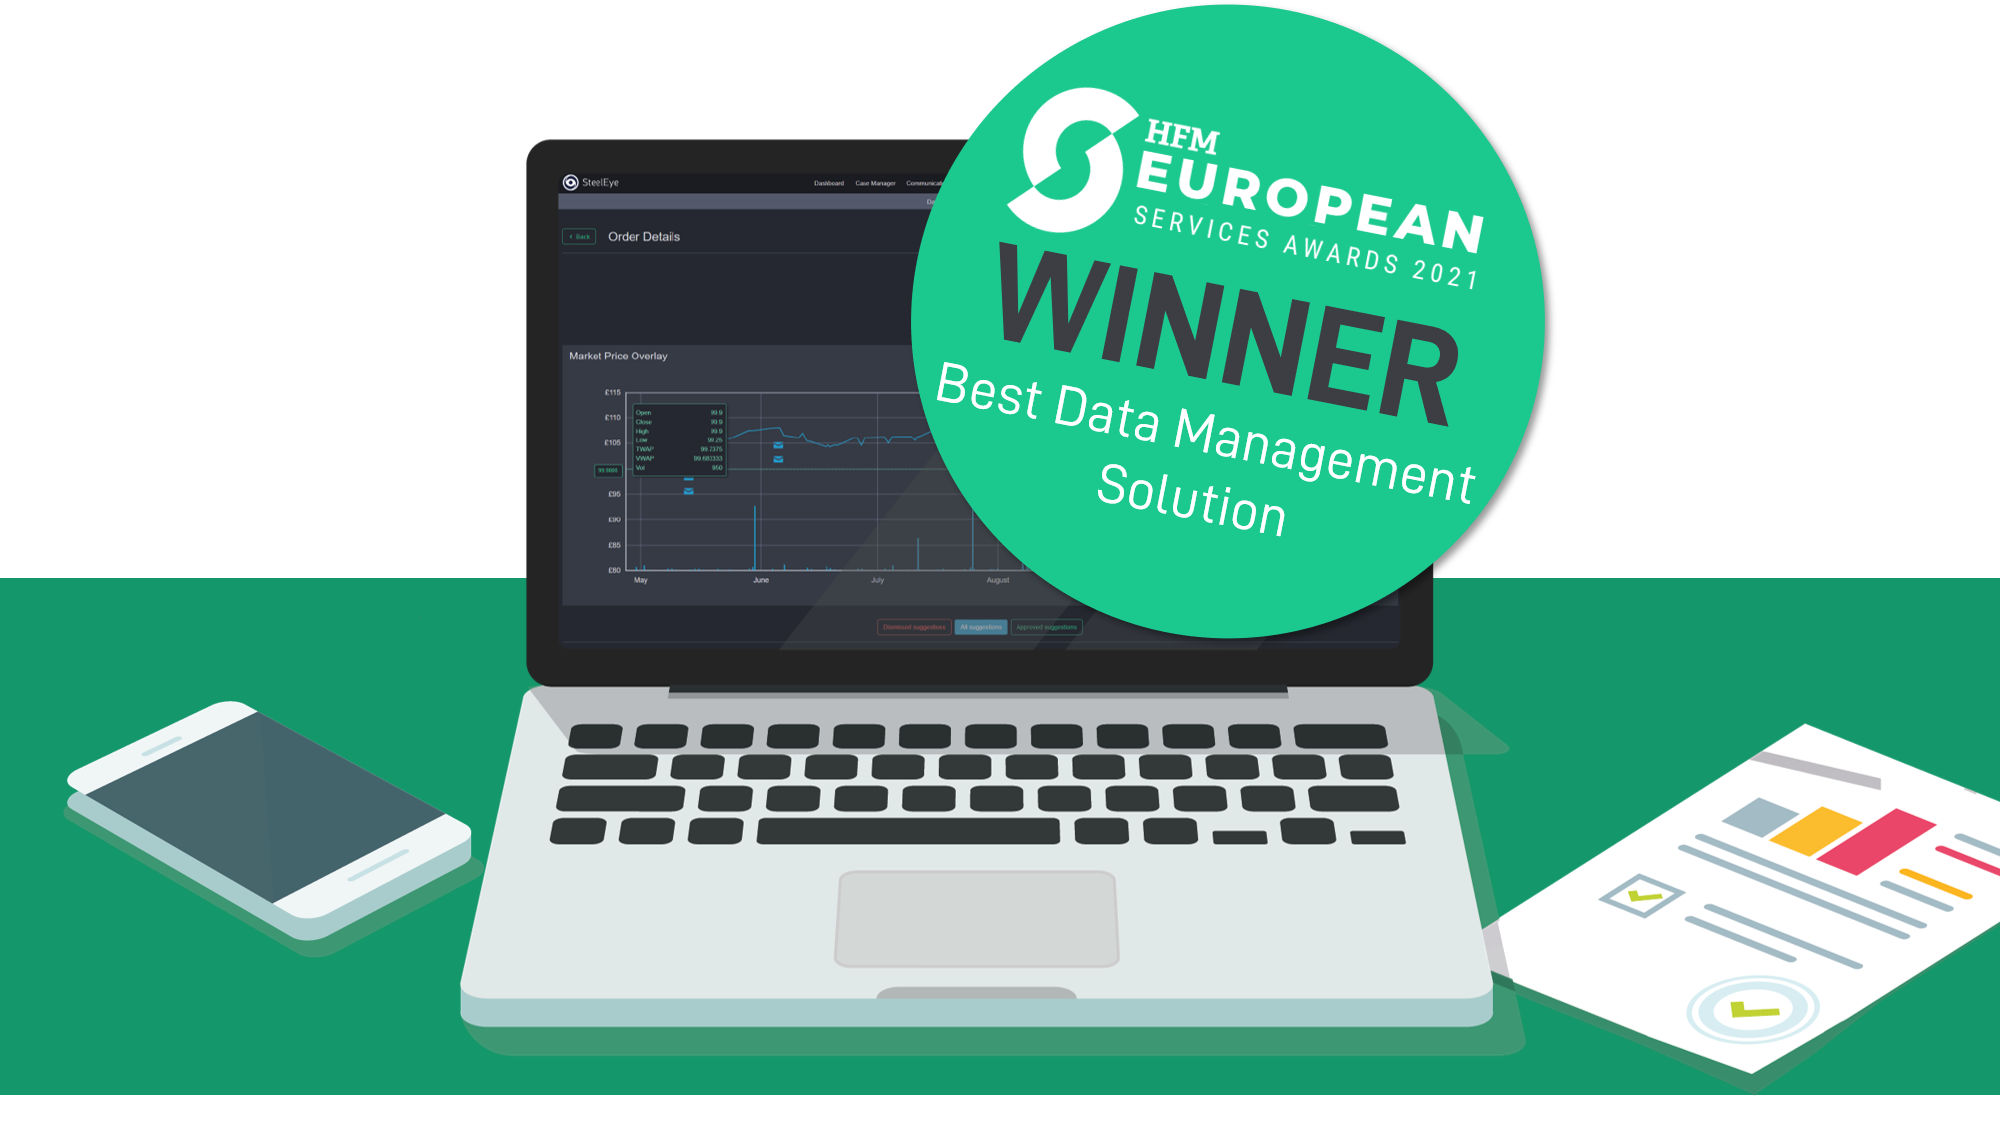 SteelEye Recognised as the Best Hedge Fund Data Management Solution